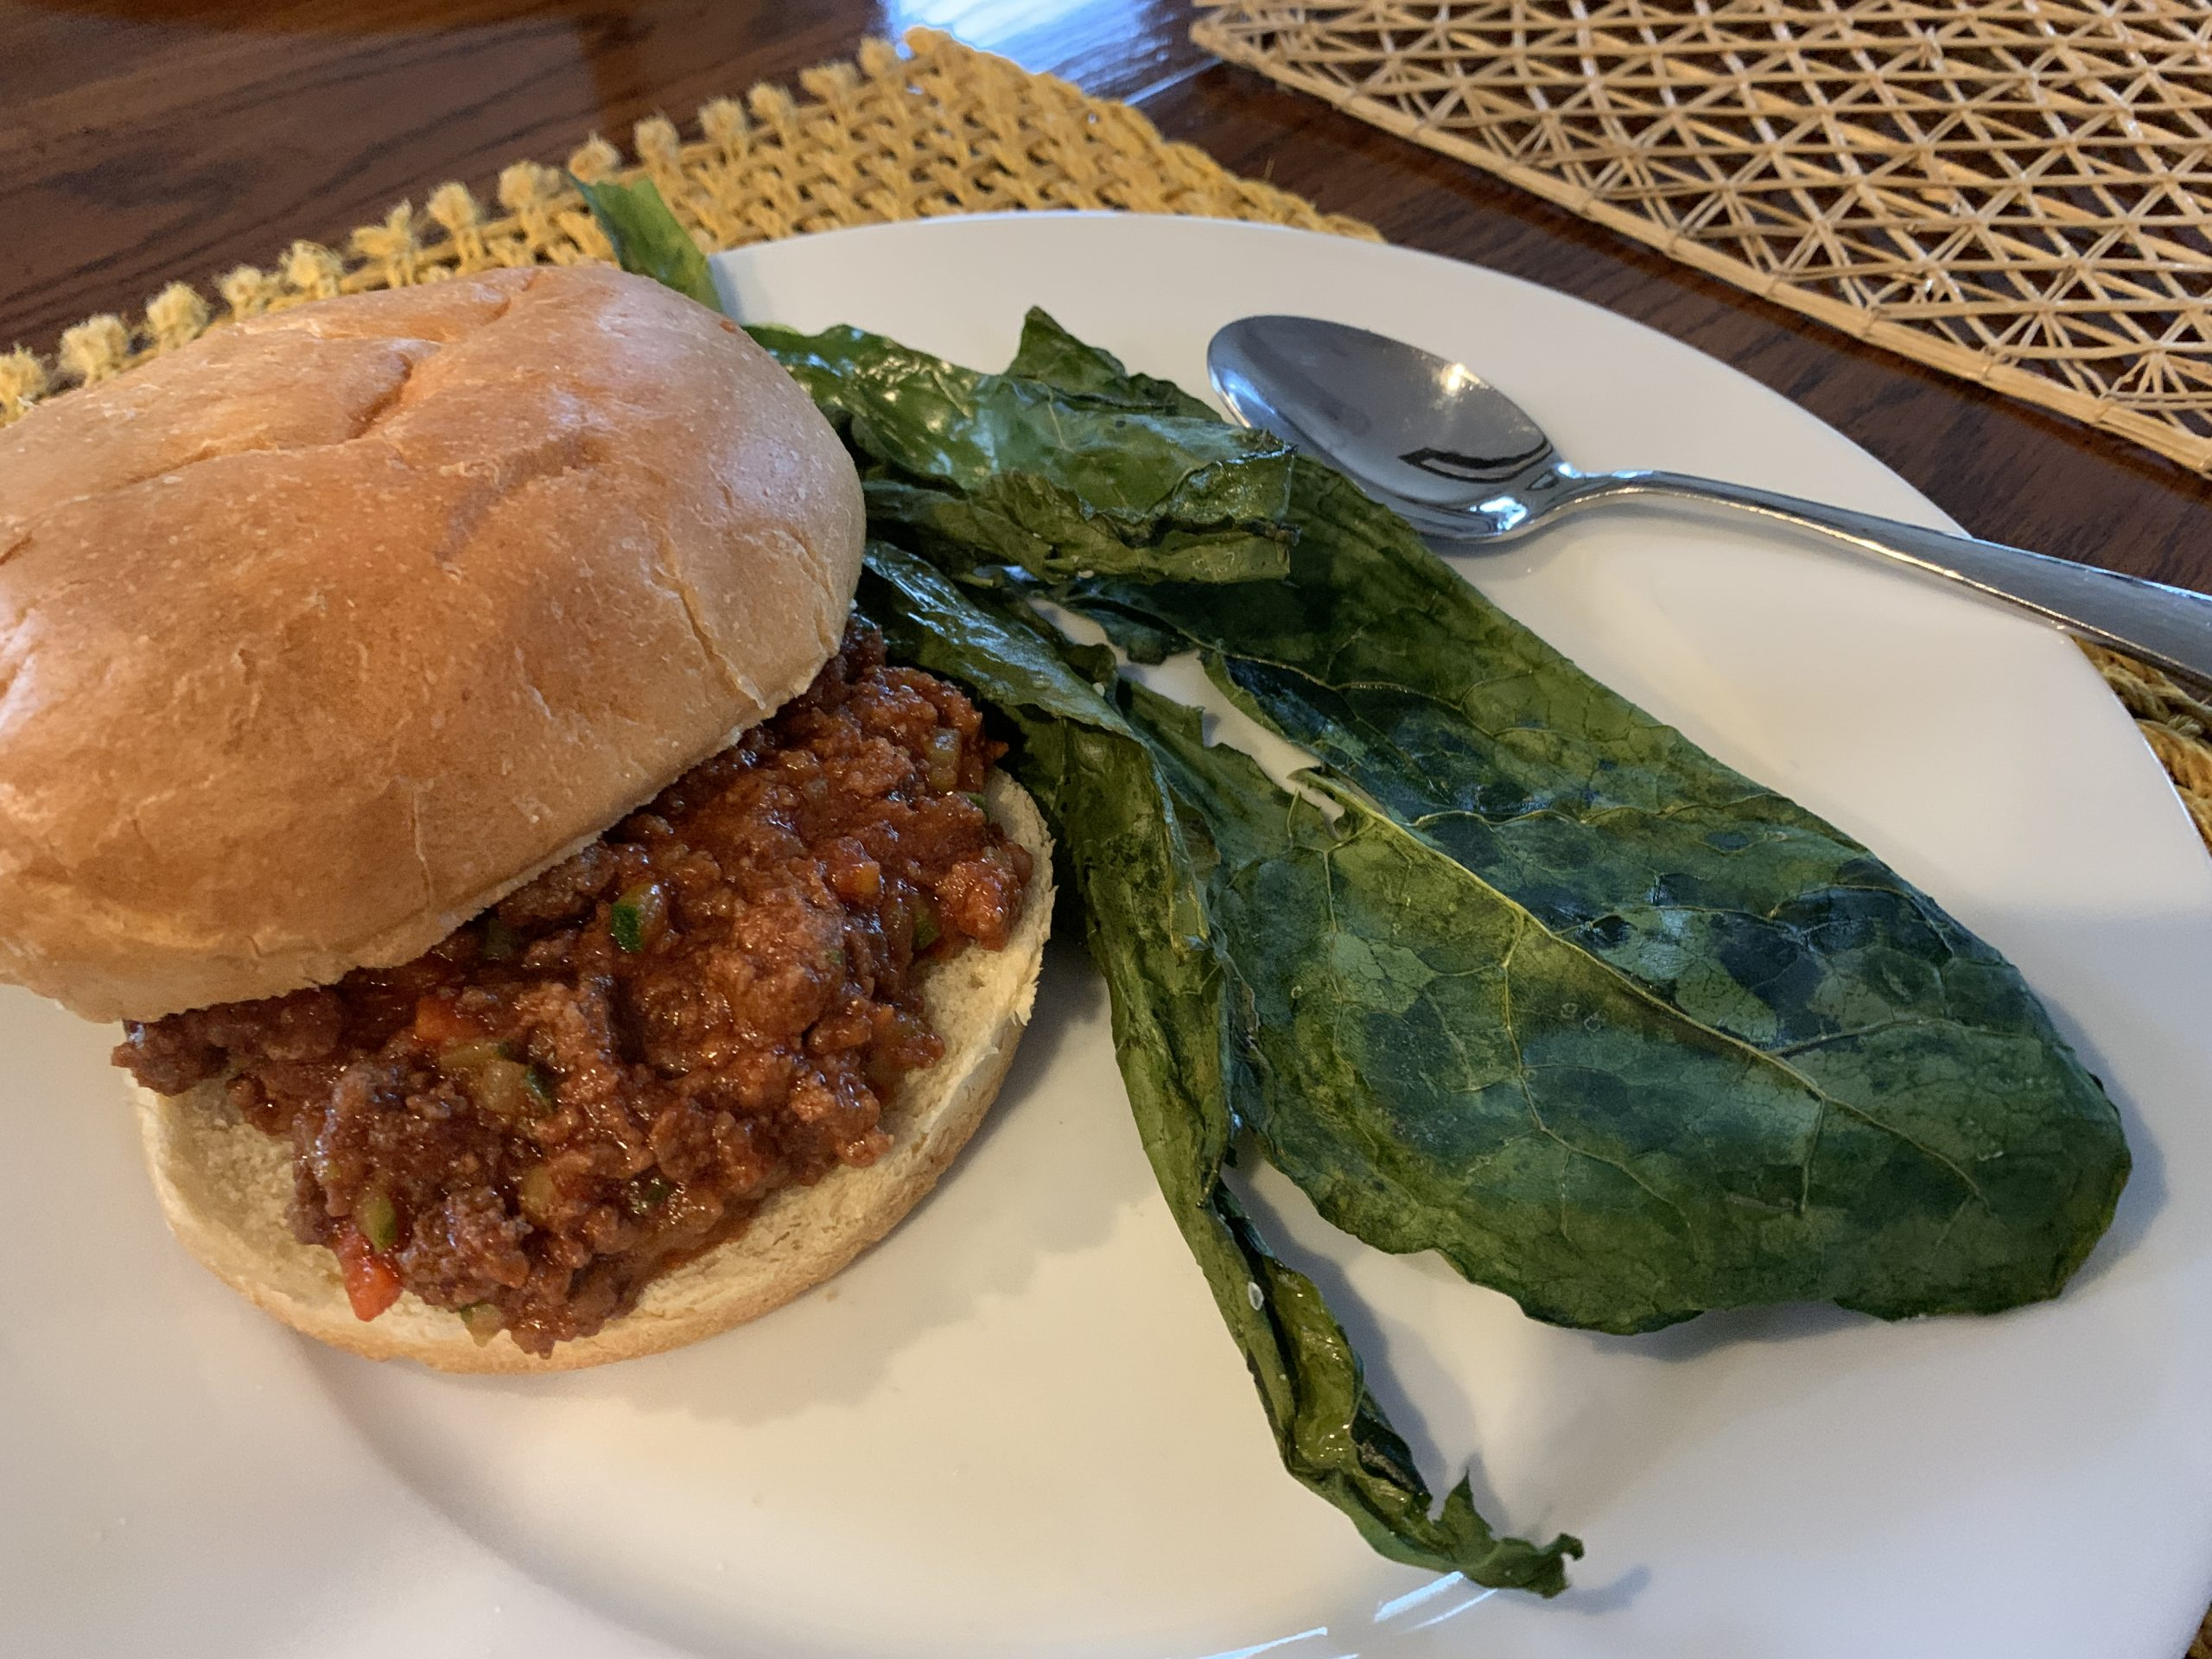 Day 21. Healthy Sloppy Joes